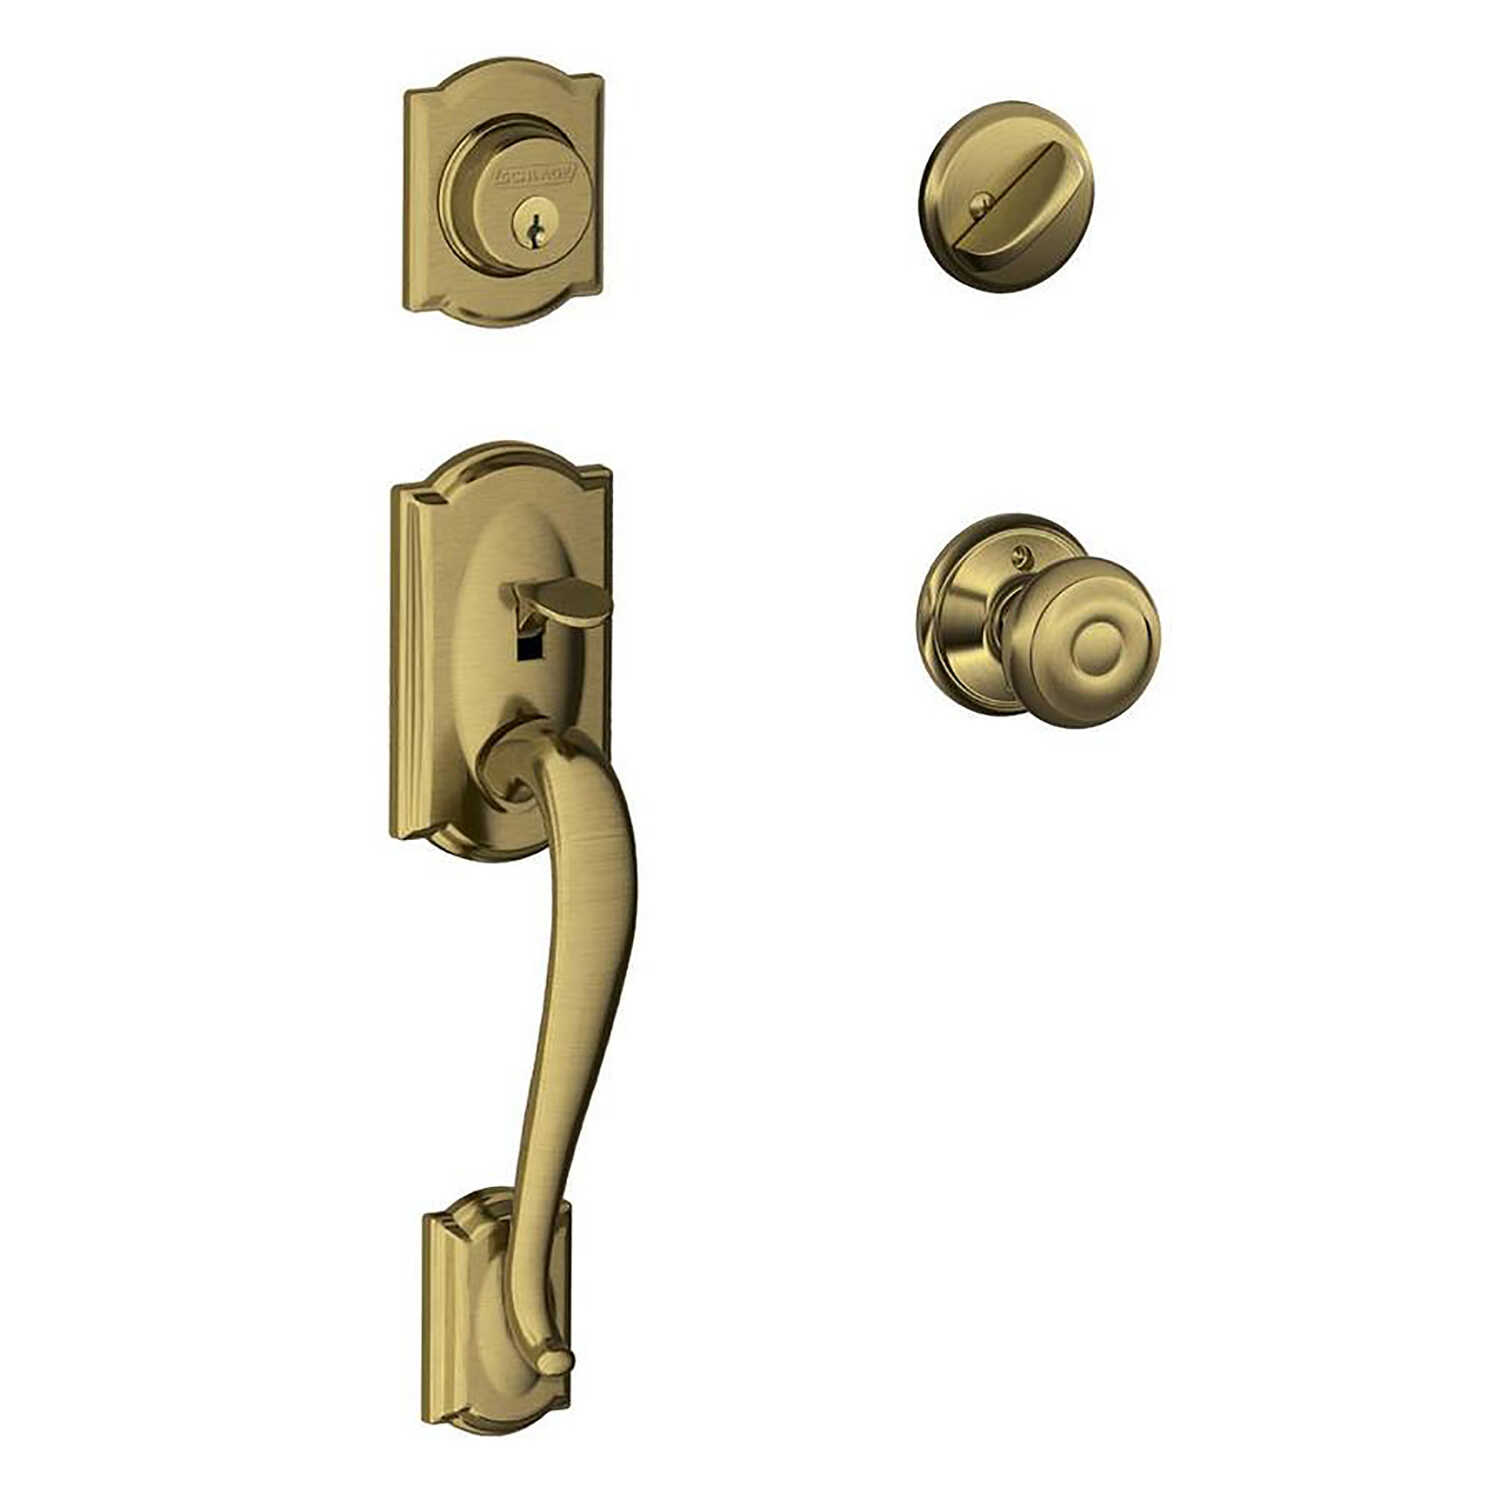 Schlage  Camelot, Accent  Antique Brass  Steel  Entry Handleset  ANSI Grade 2  1-3/4 in.